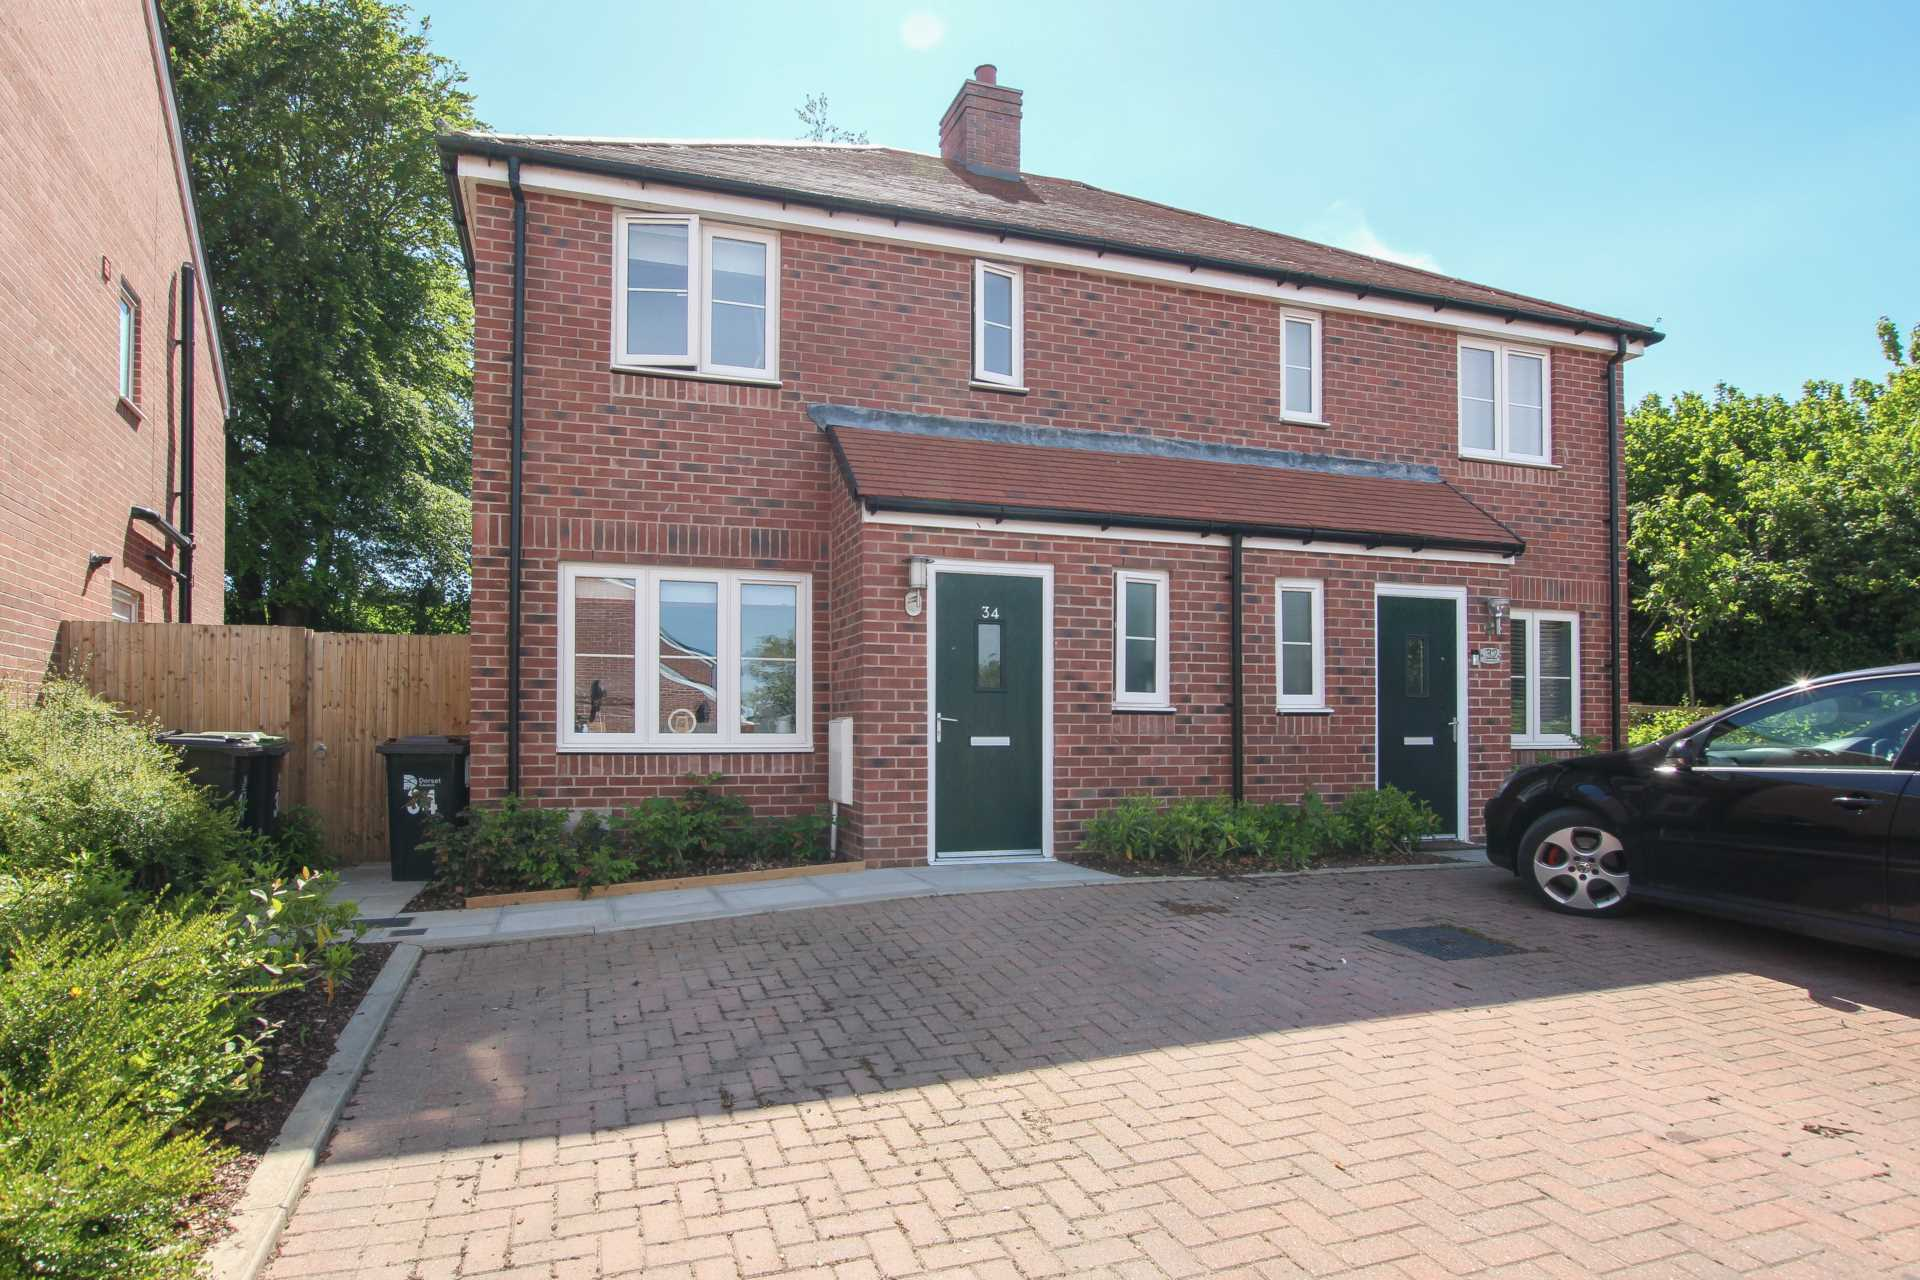 3 bed semi-detached house for sale in Esme Avenue, Blandford St Mary, Blandford Forum 0